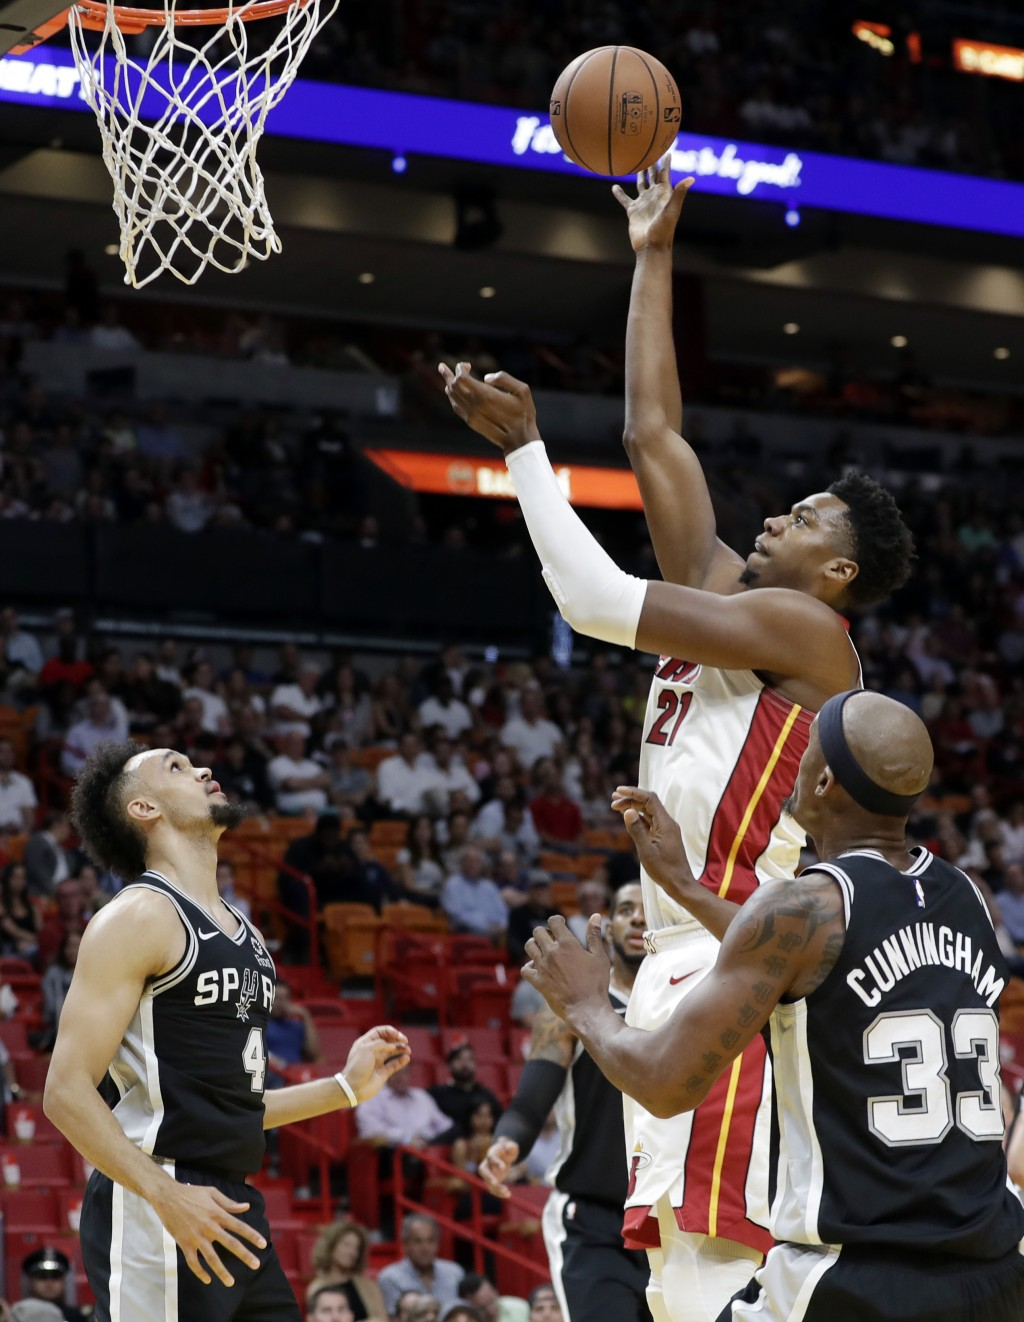 Miami Heat center Hassan Whiteside (21) shoots over San Antonio Spurs guard Derrick White (4) and forward Dante Cunningham (33) during the first half ...